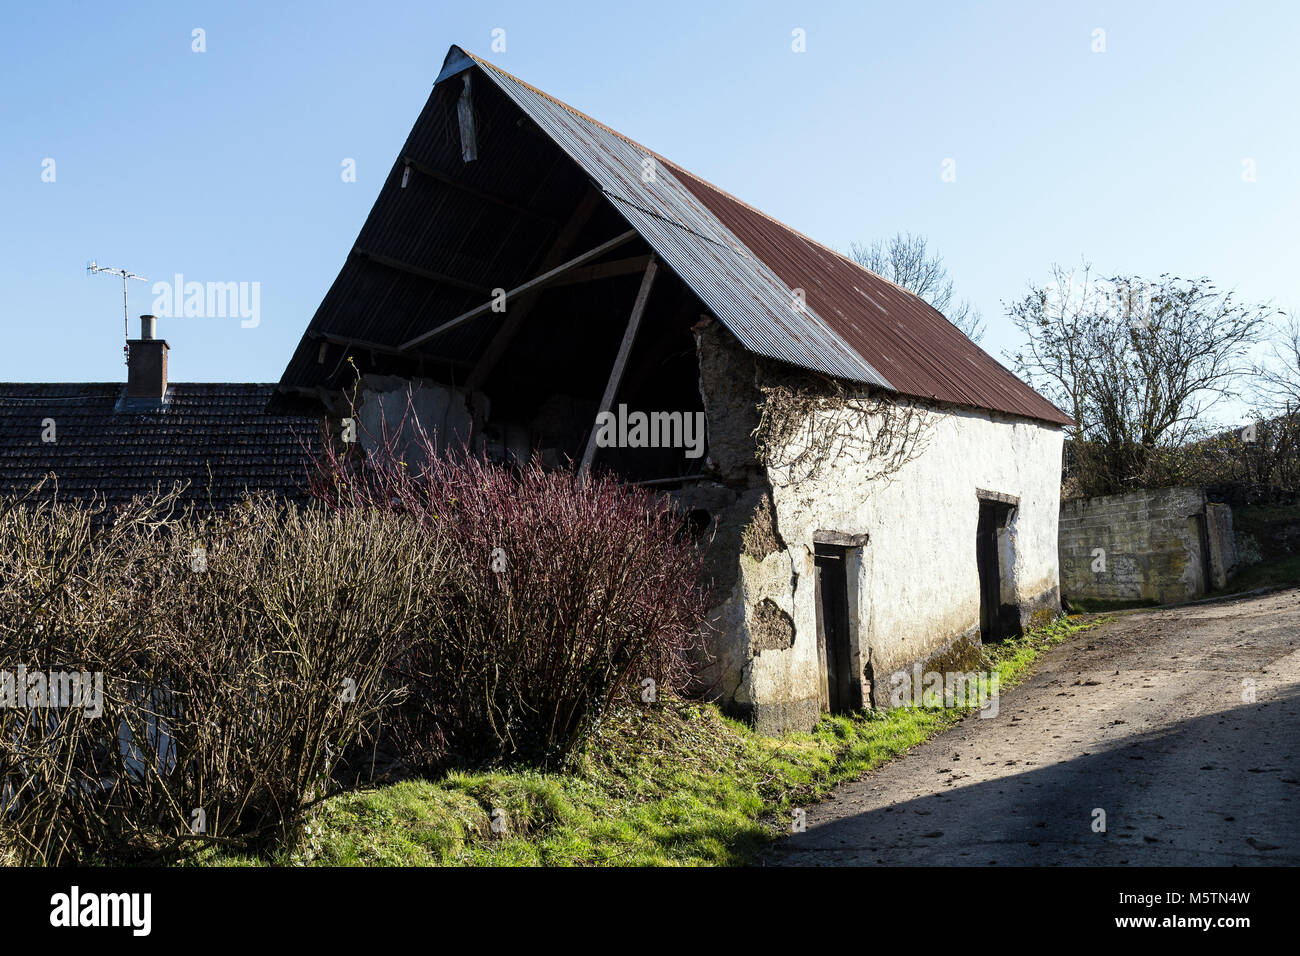 A large farm building used for storing grain, hay, or straw or for housing livestock.The triangular upper part of - Stock Image